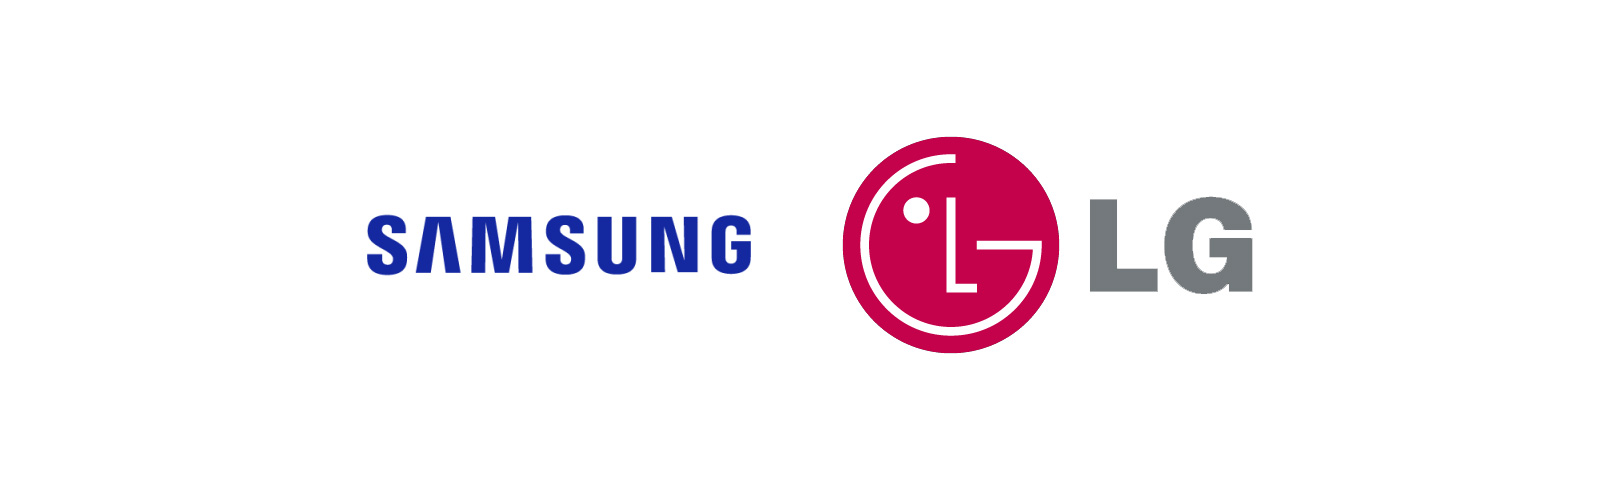 Samsung reportedly will source large-size LCD TV panels from LG Display